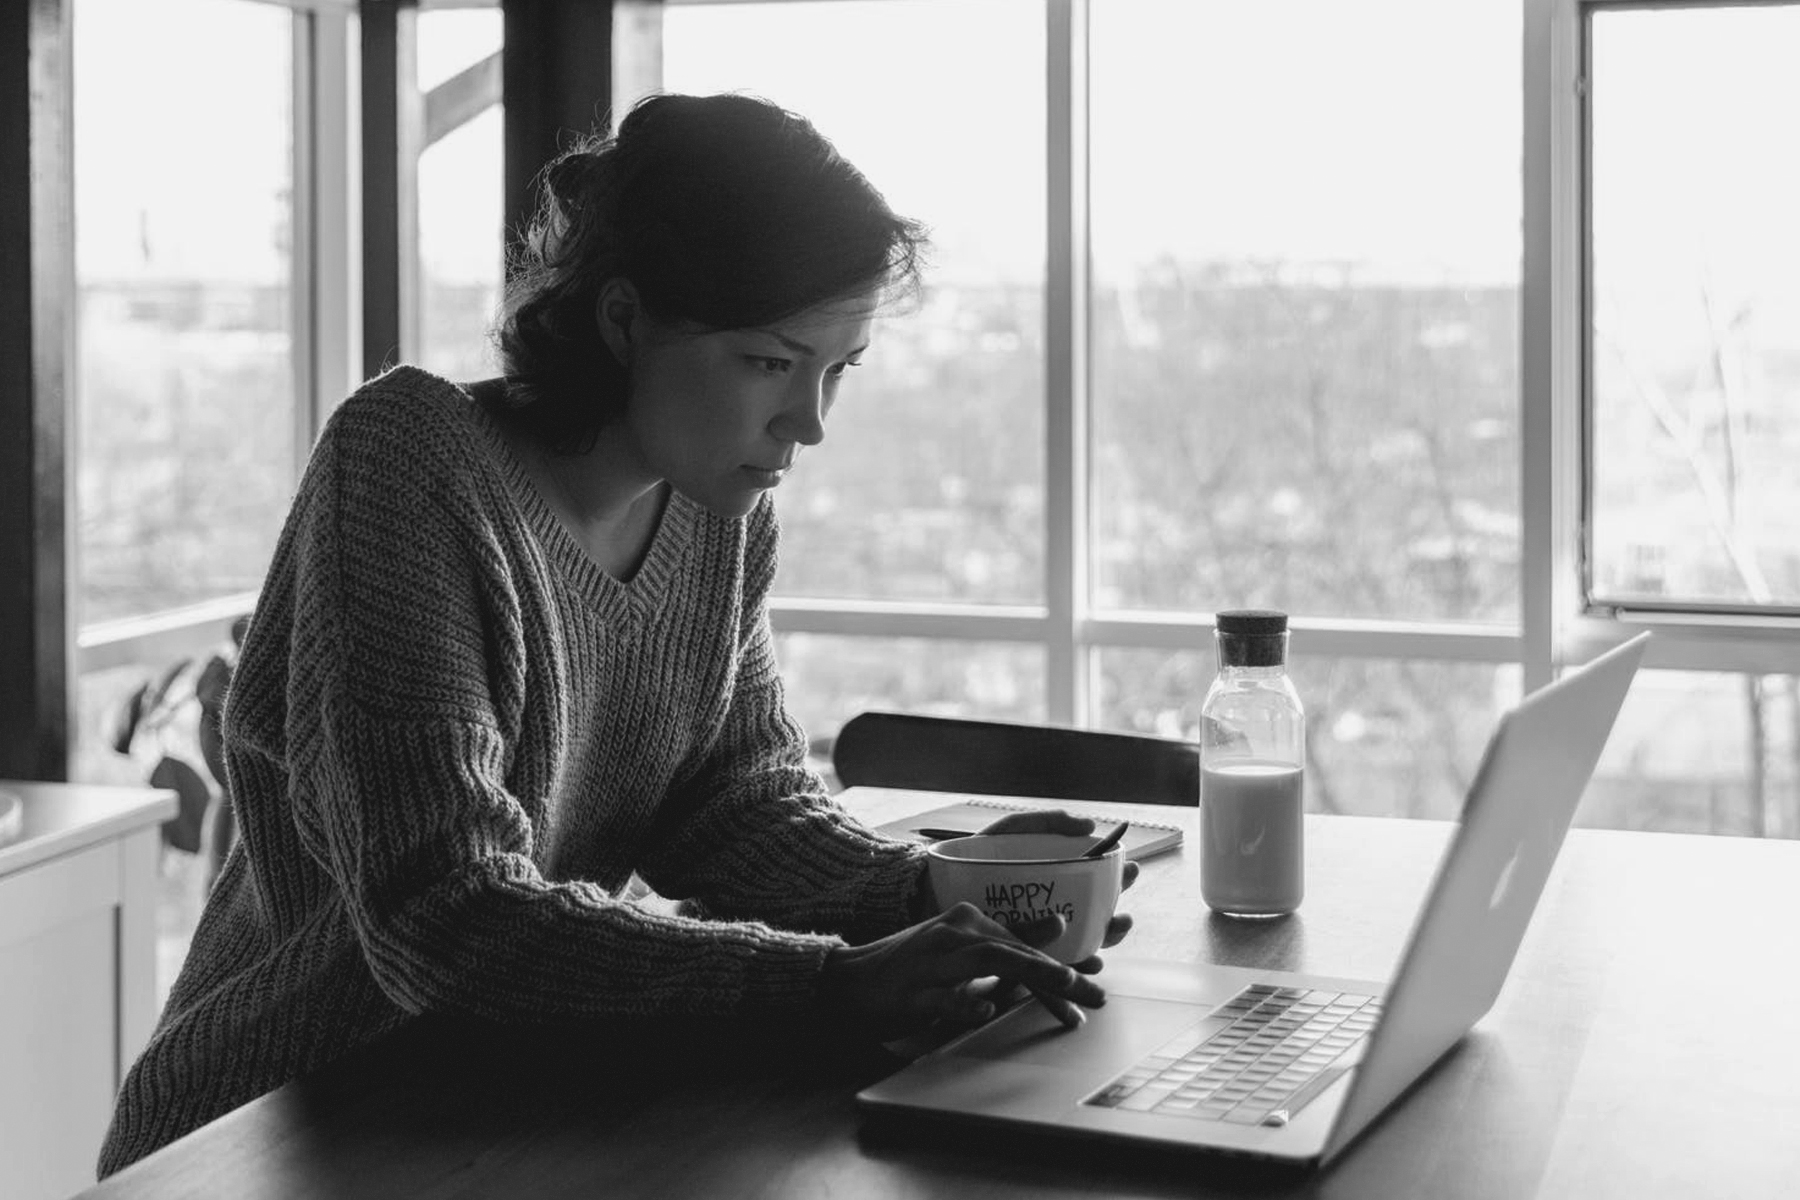 A young lady using a laptop with a cup of tea next to her